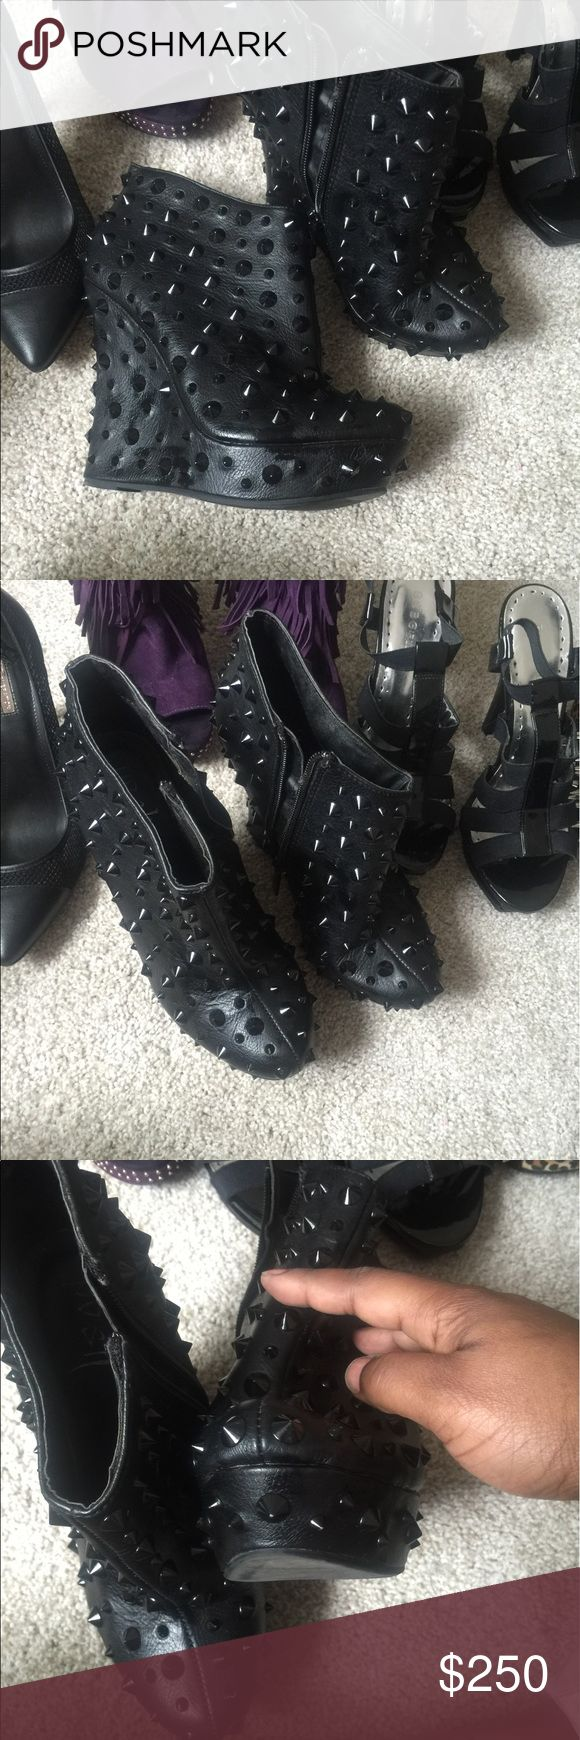 SPIKED HEEL ANKLE WEDGE BOOTS 9M RARE FIND! STYLISH BOOTS SURE TO SET THE TREND! Shoes Ankle Boots & Booties